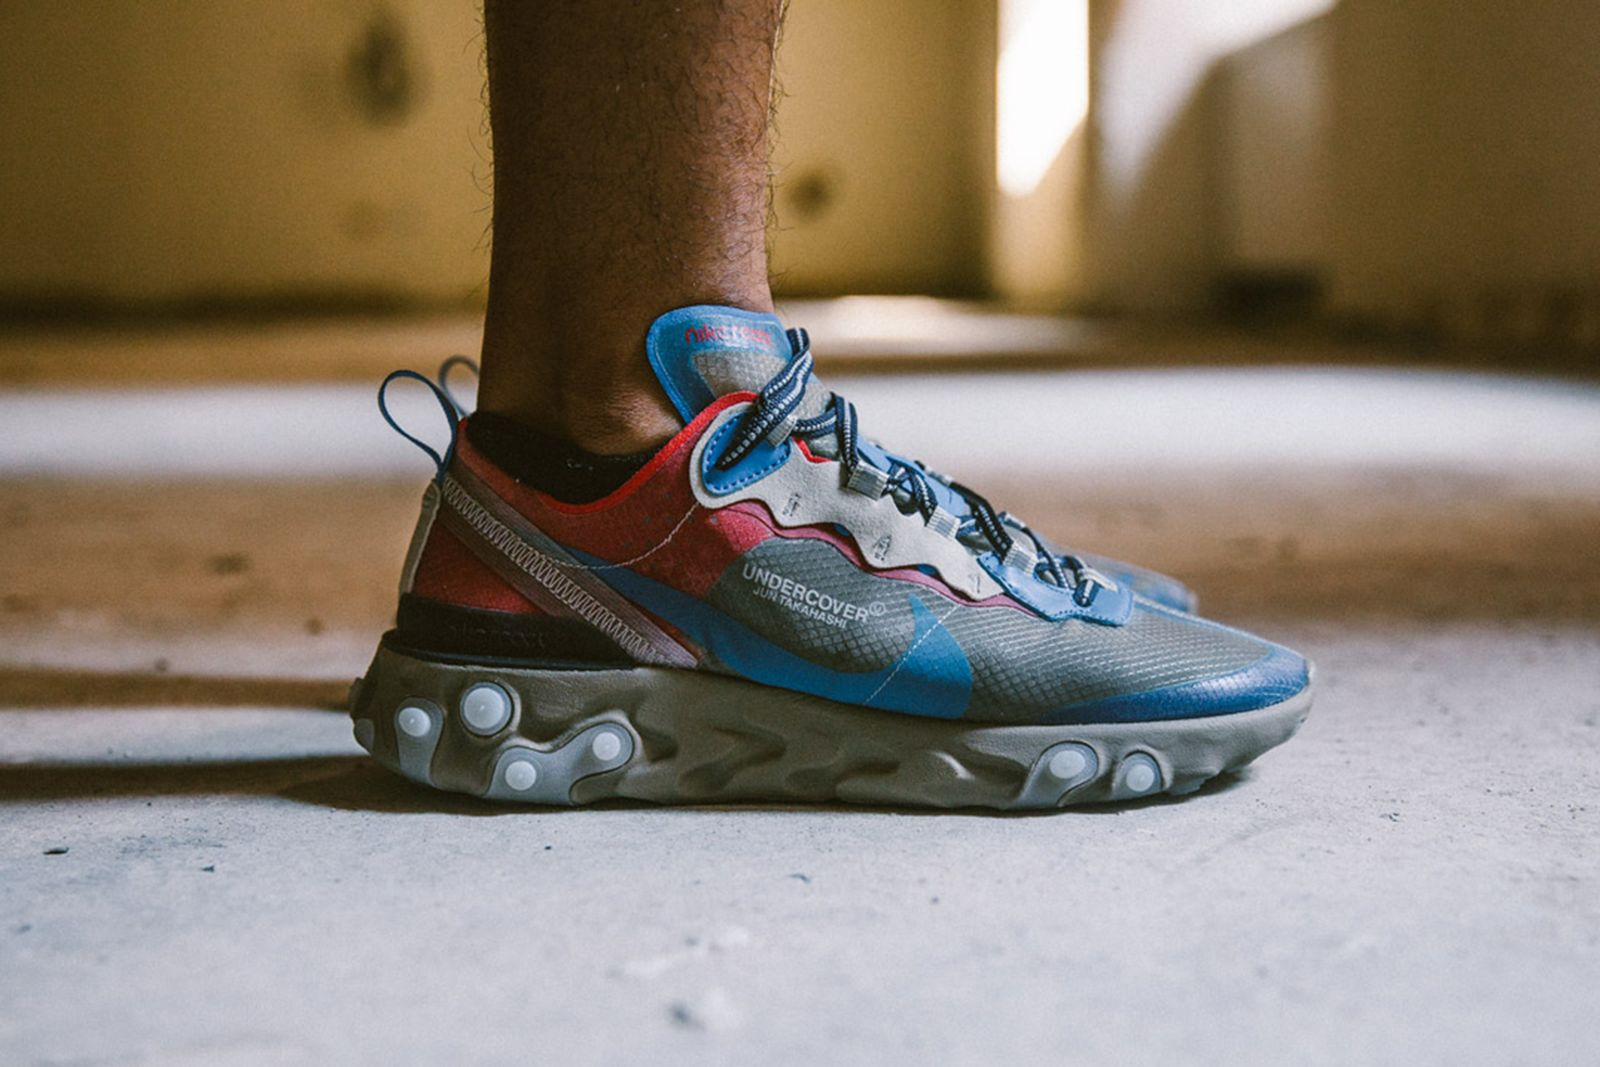 UNDERCOVER Nike React Element 87 | Buy & Sell at StockX